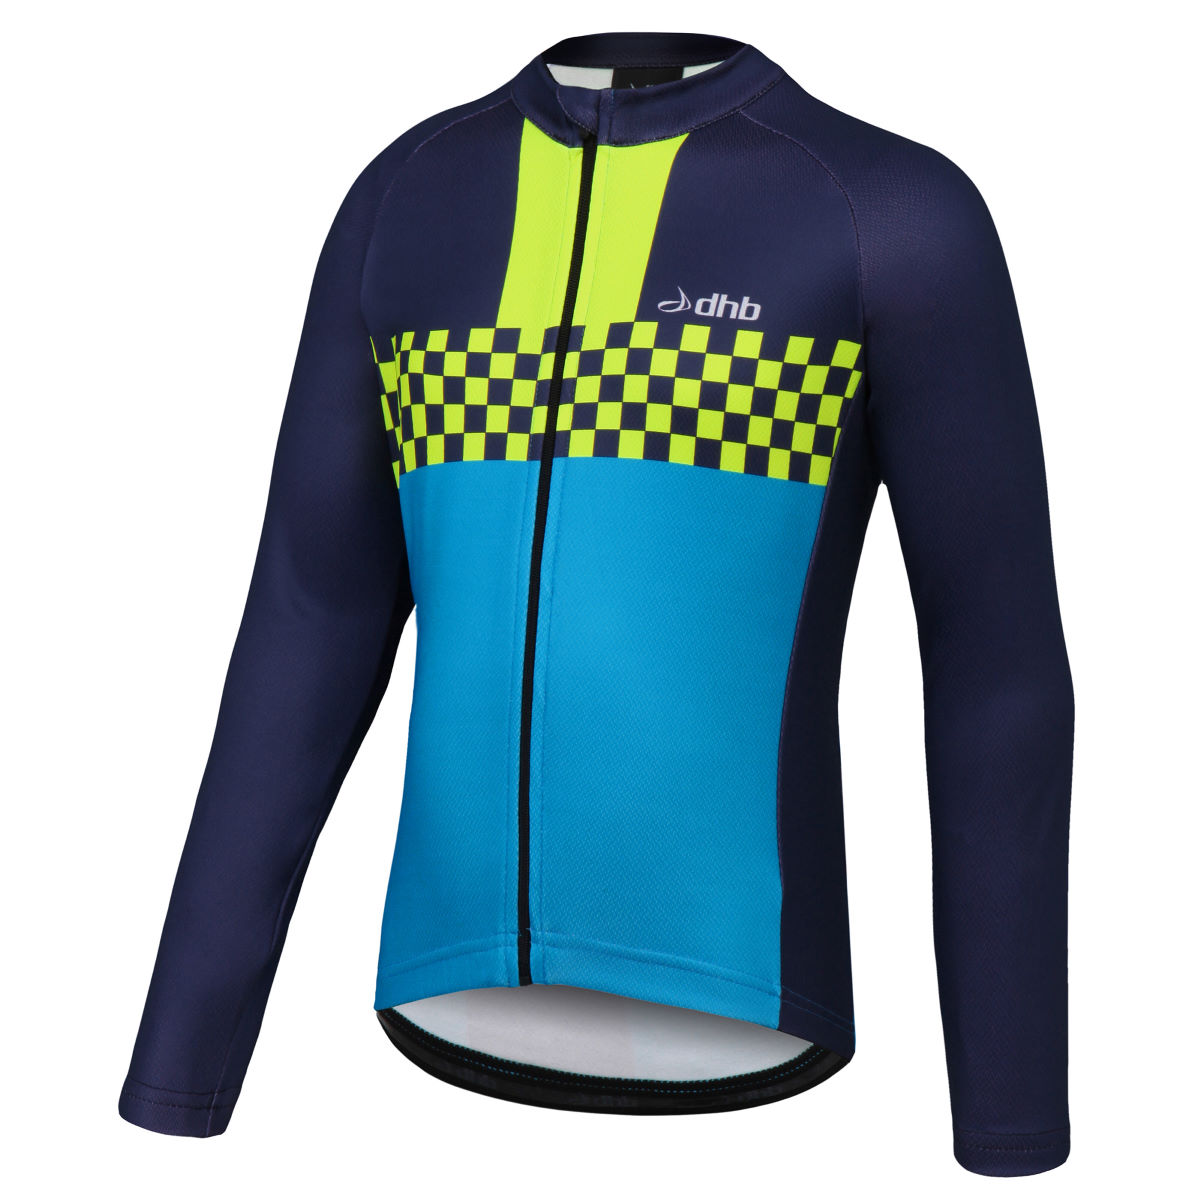 dhb Kids Race Long Sleeve Jersey   Long Sleeve Cycling Jerseys